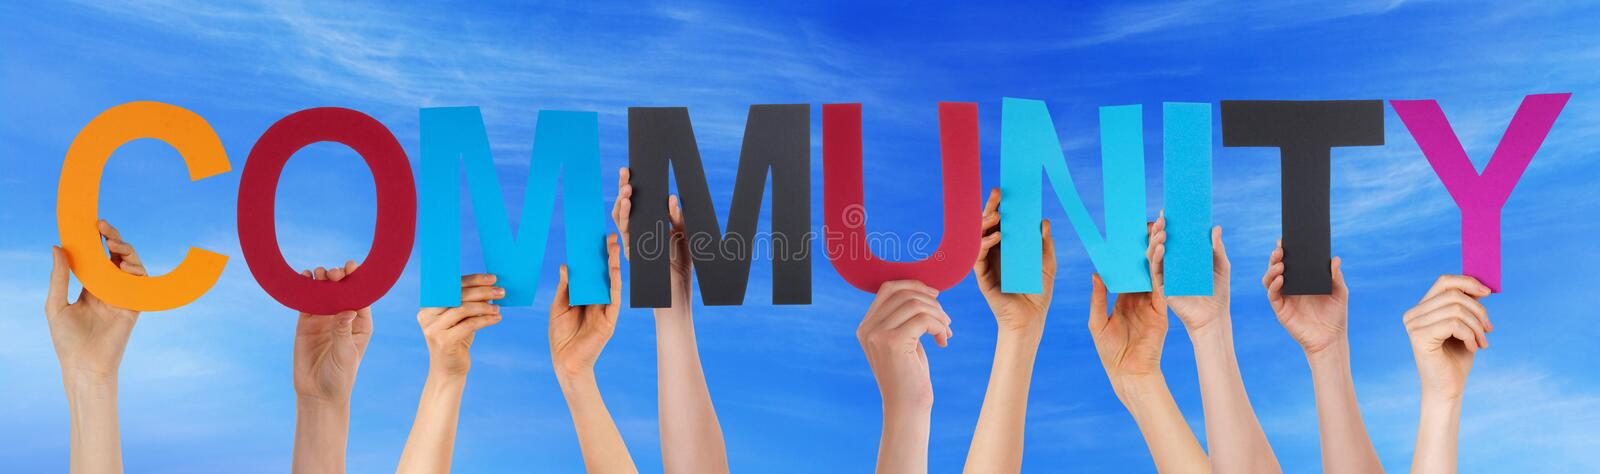 Hands Hold Colorful Straight Word Community Sky. Many Caucasian People And Hands Holding Colorful Straight Letters Or Characters Building The English Word royalty free stock image